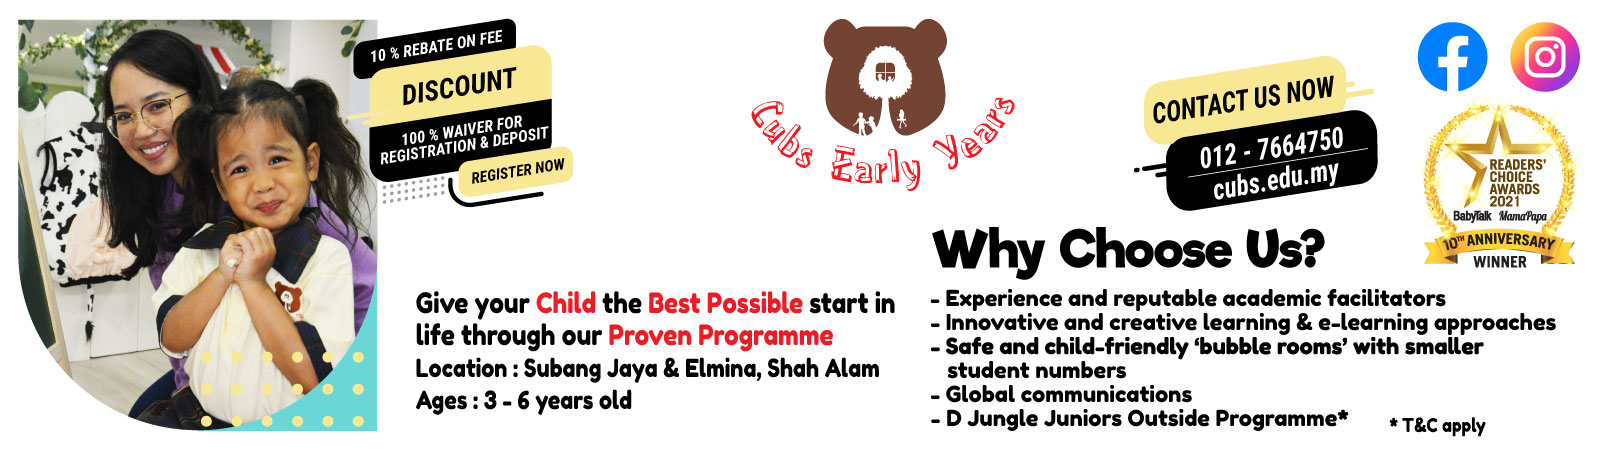 Cubs Early Years: For the enriched learning experience your child deserves